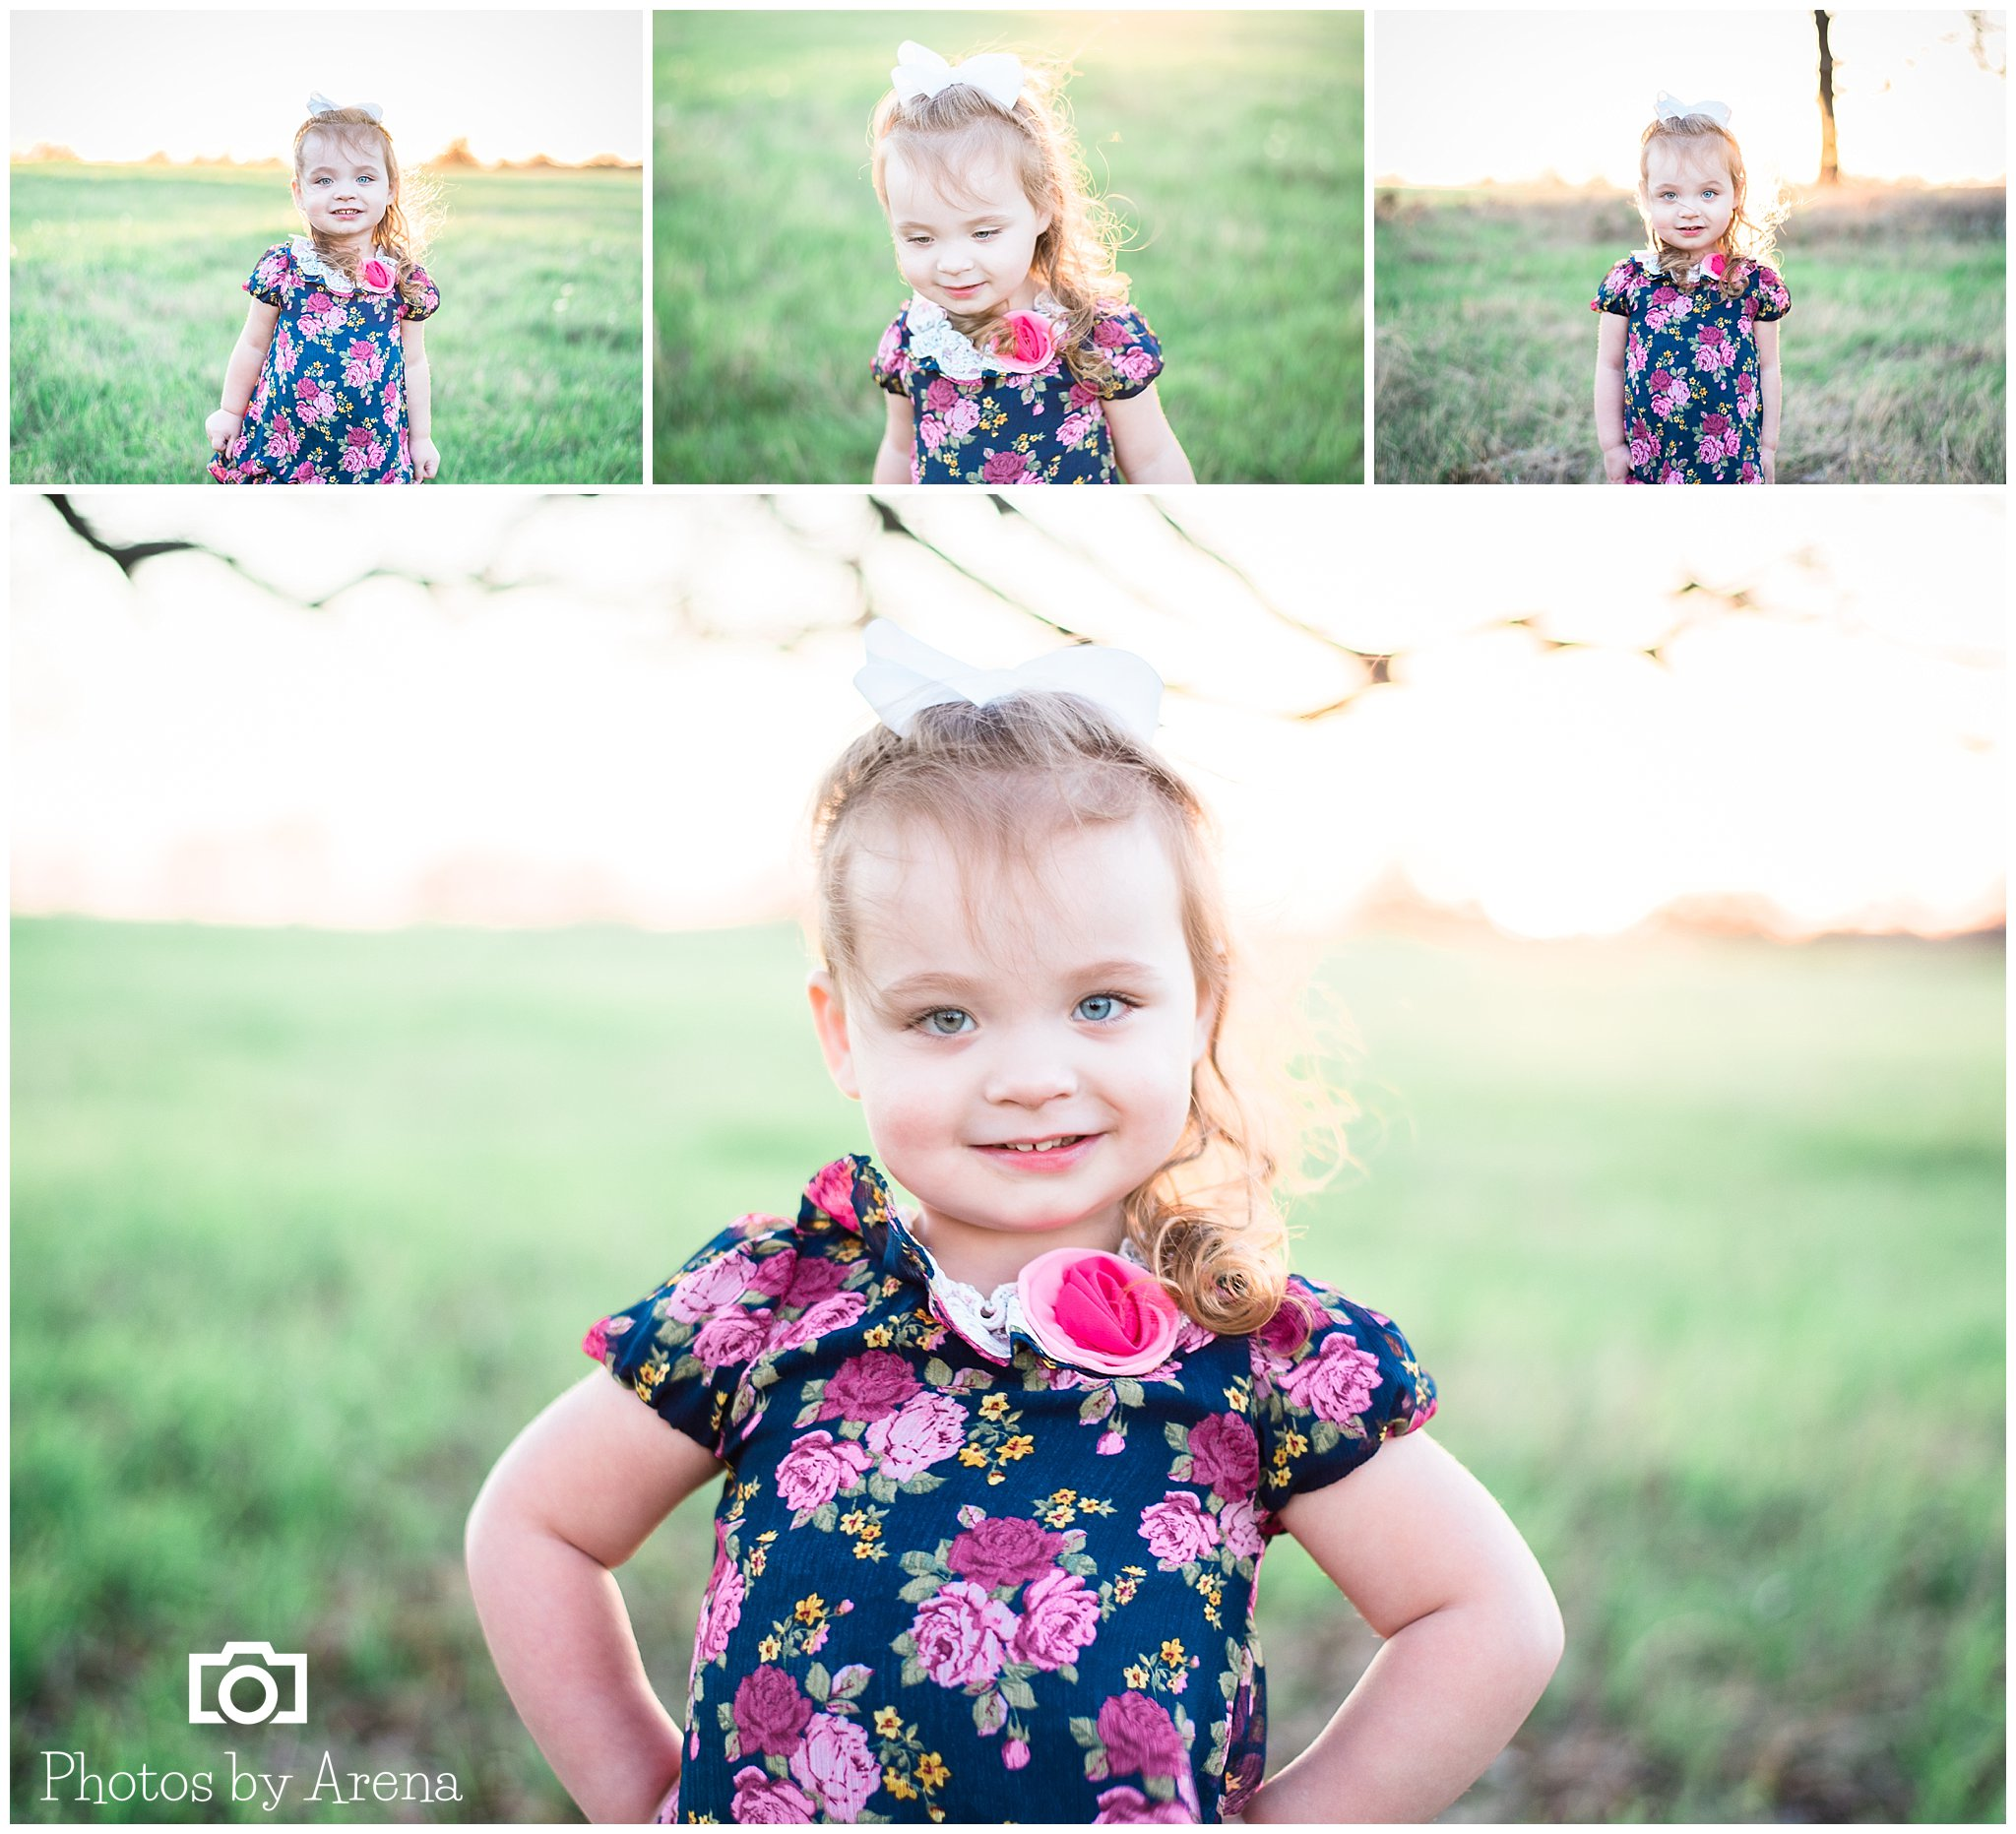 She has officially turned three since I took these photos. Time is going by too quick.